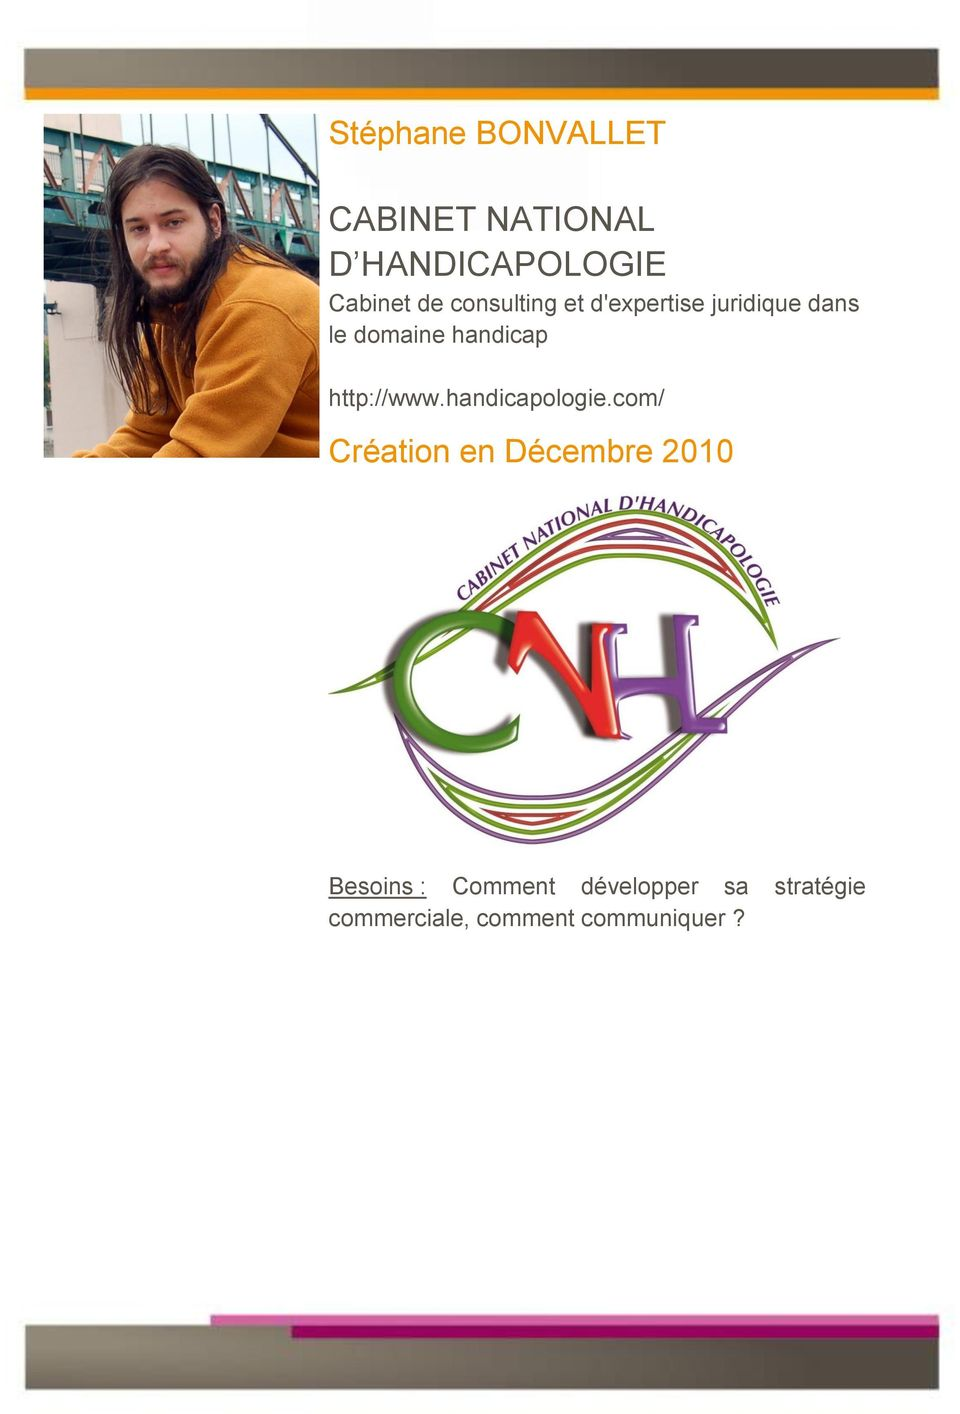 http://www.handicapologie.